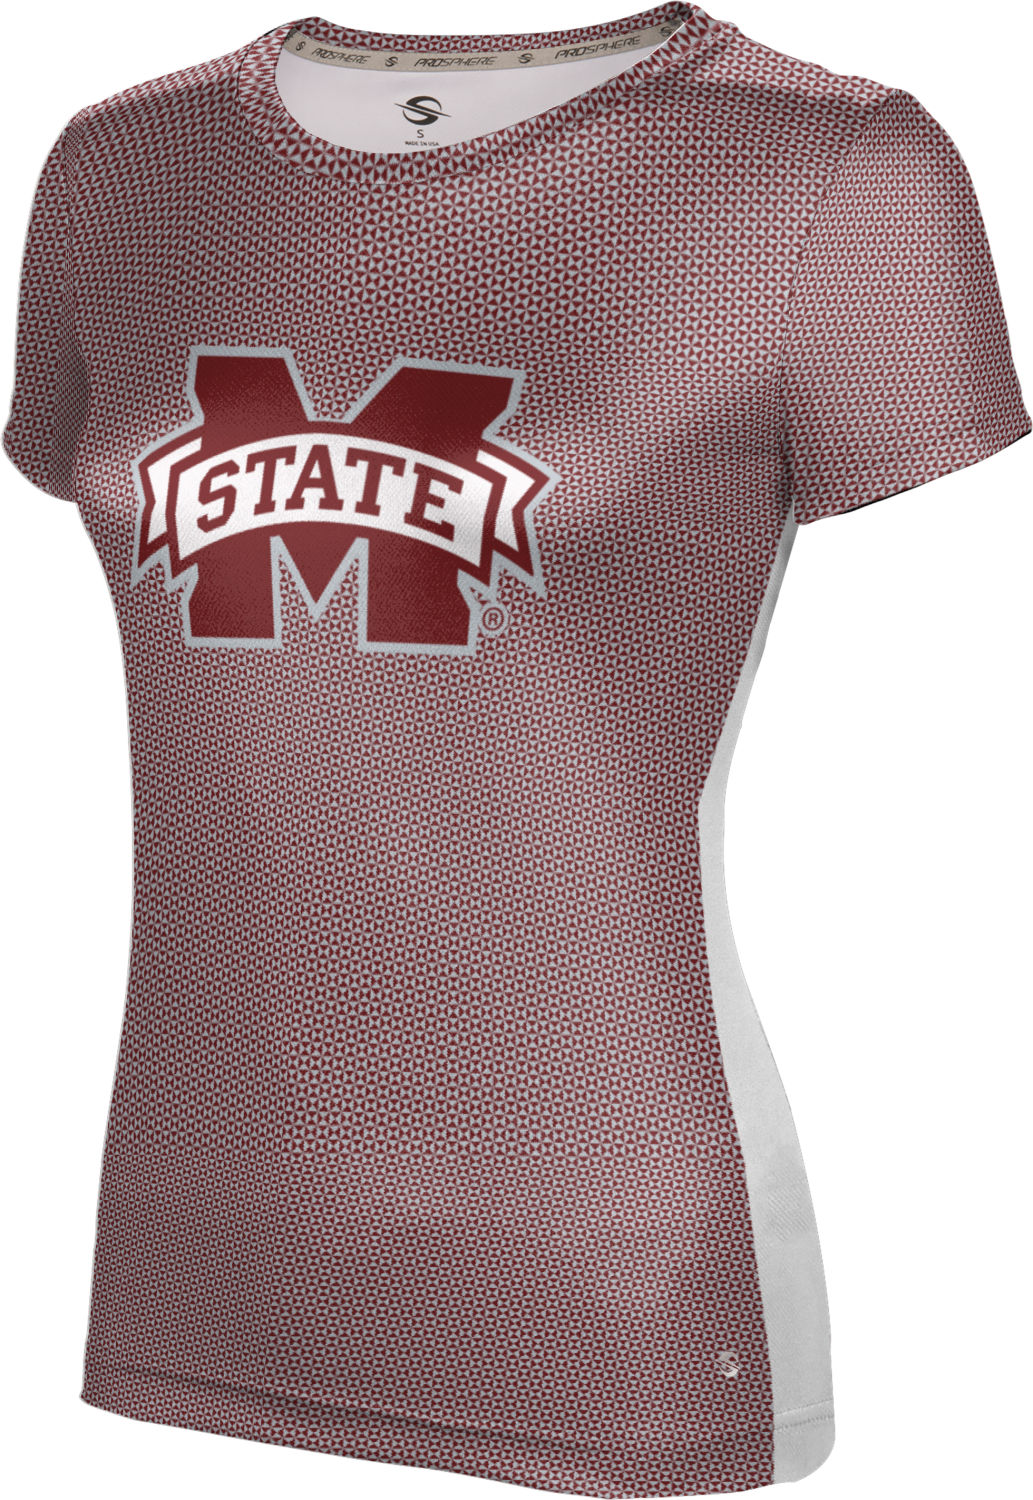 ProSphere Girls' Mississippi State University Embrace Tech Tee